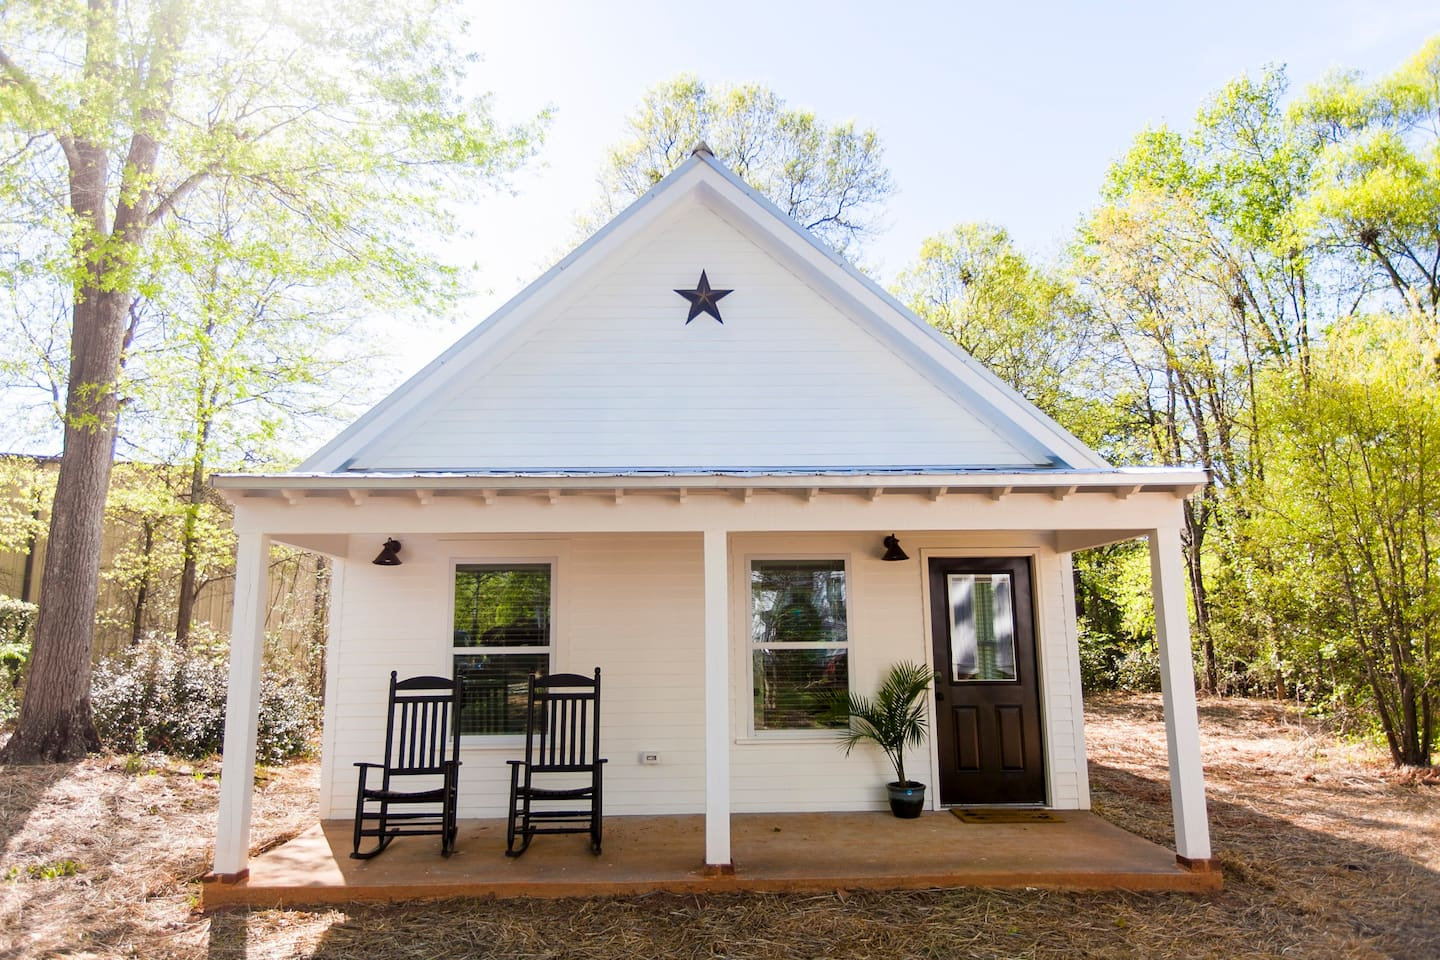 Our 1BR/1BA guest cottage is tucked away on the far side of our 1 acre lot - the entrance is private and completely separate from our main residence. Enjoy the rocking chair front porch!